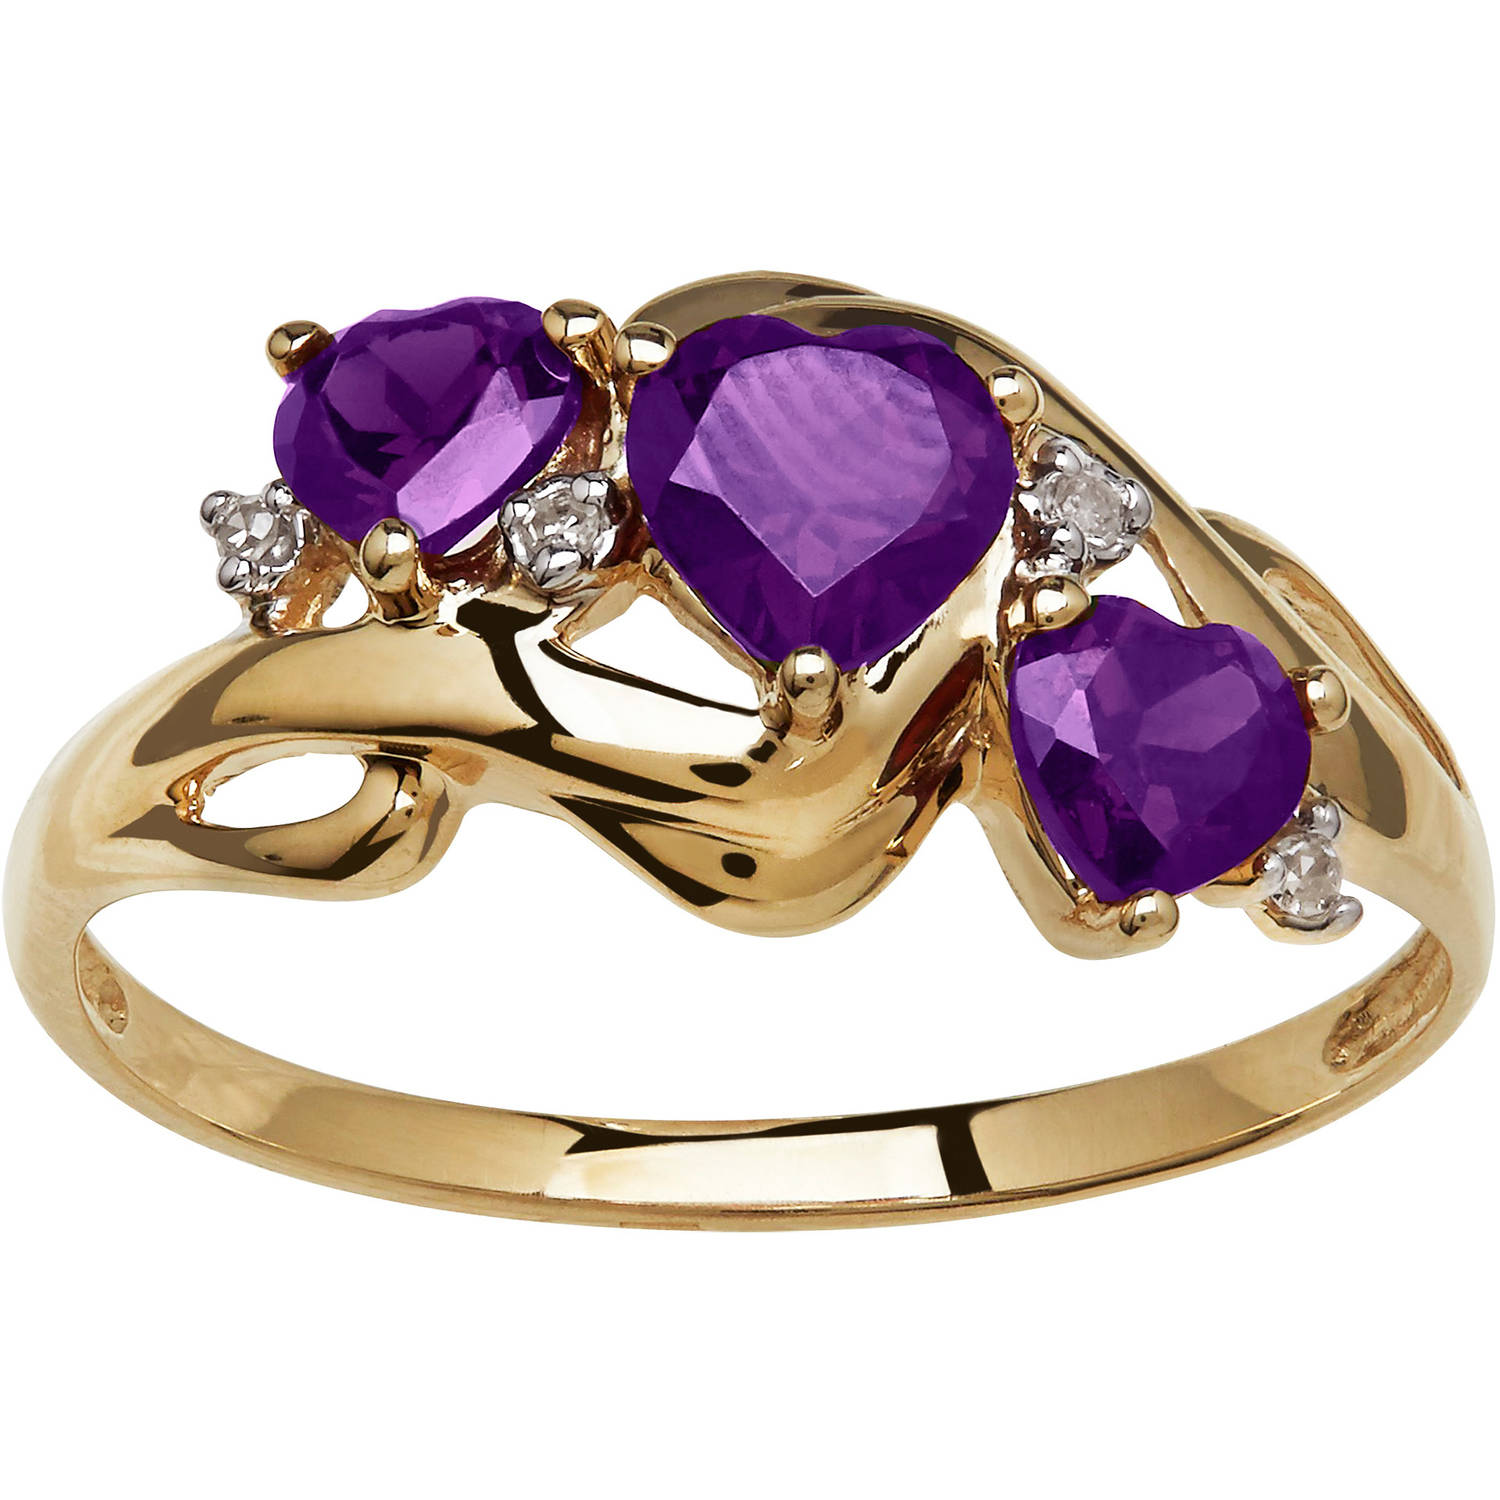 Simply Gold Gemstone Threestone Heart-Shaped Amethyst with Diamond Accent 10kt Yellow Gold Ring, Size 7 by Richline Group Inc